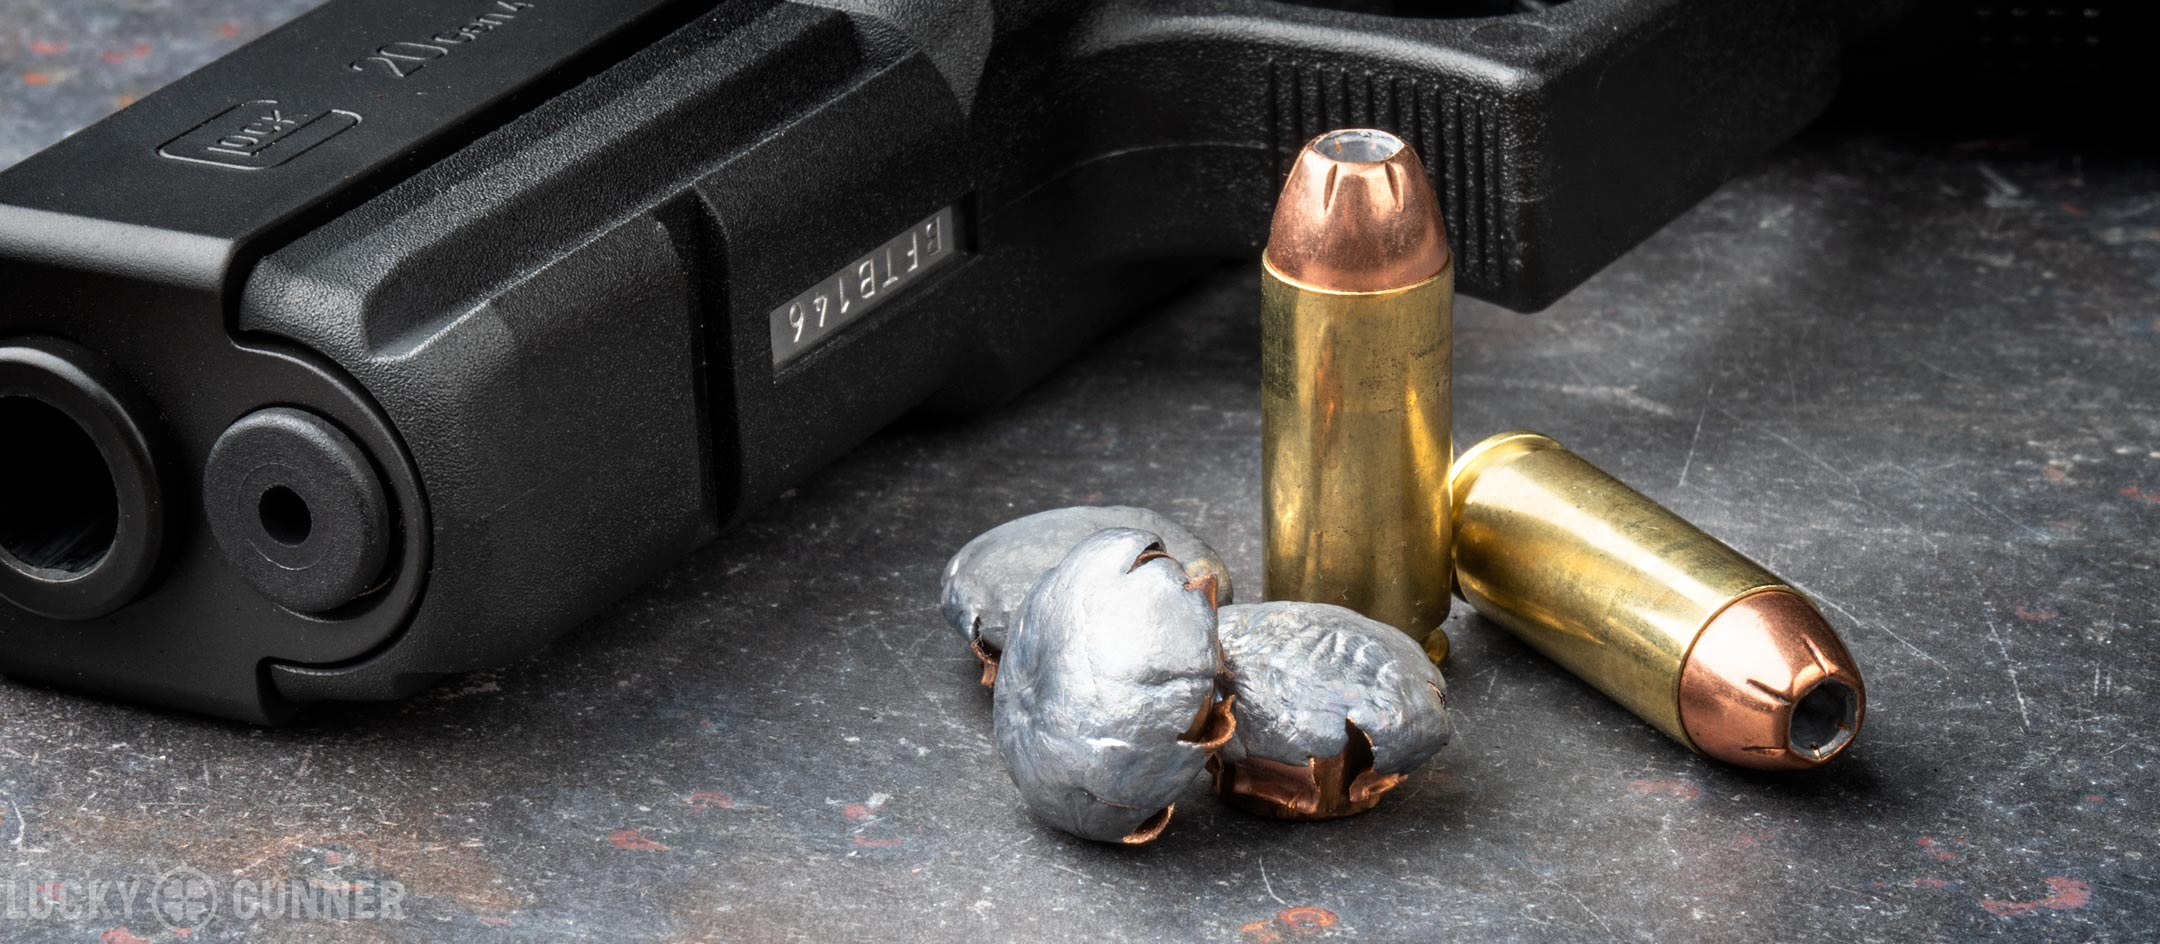 Is 10mm a Viable Self-Defense Caliber? - Lucky Gunner Lounge